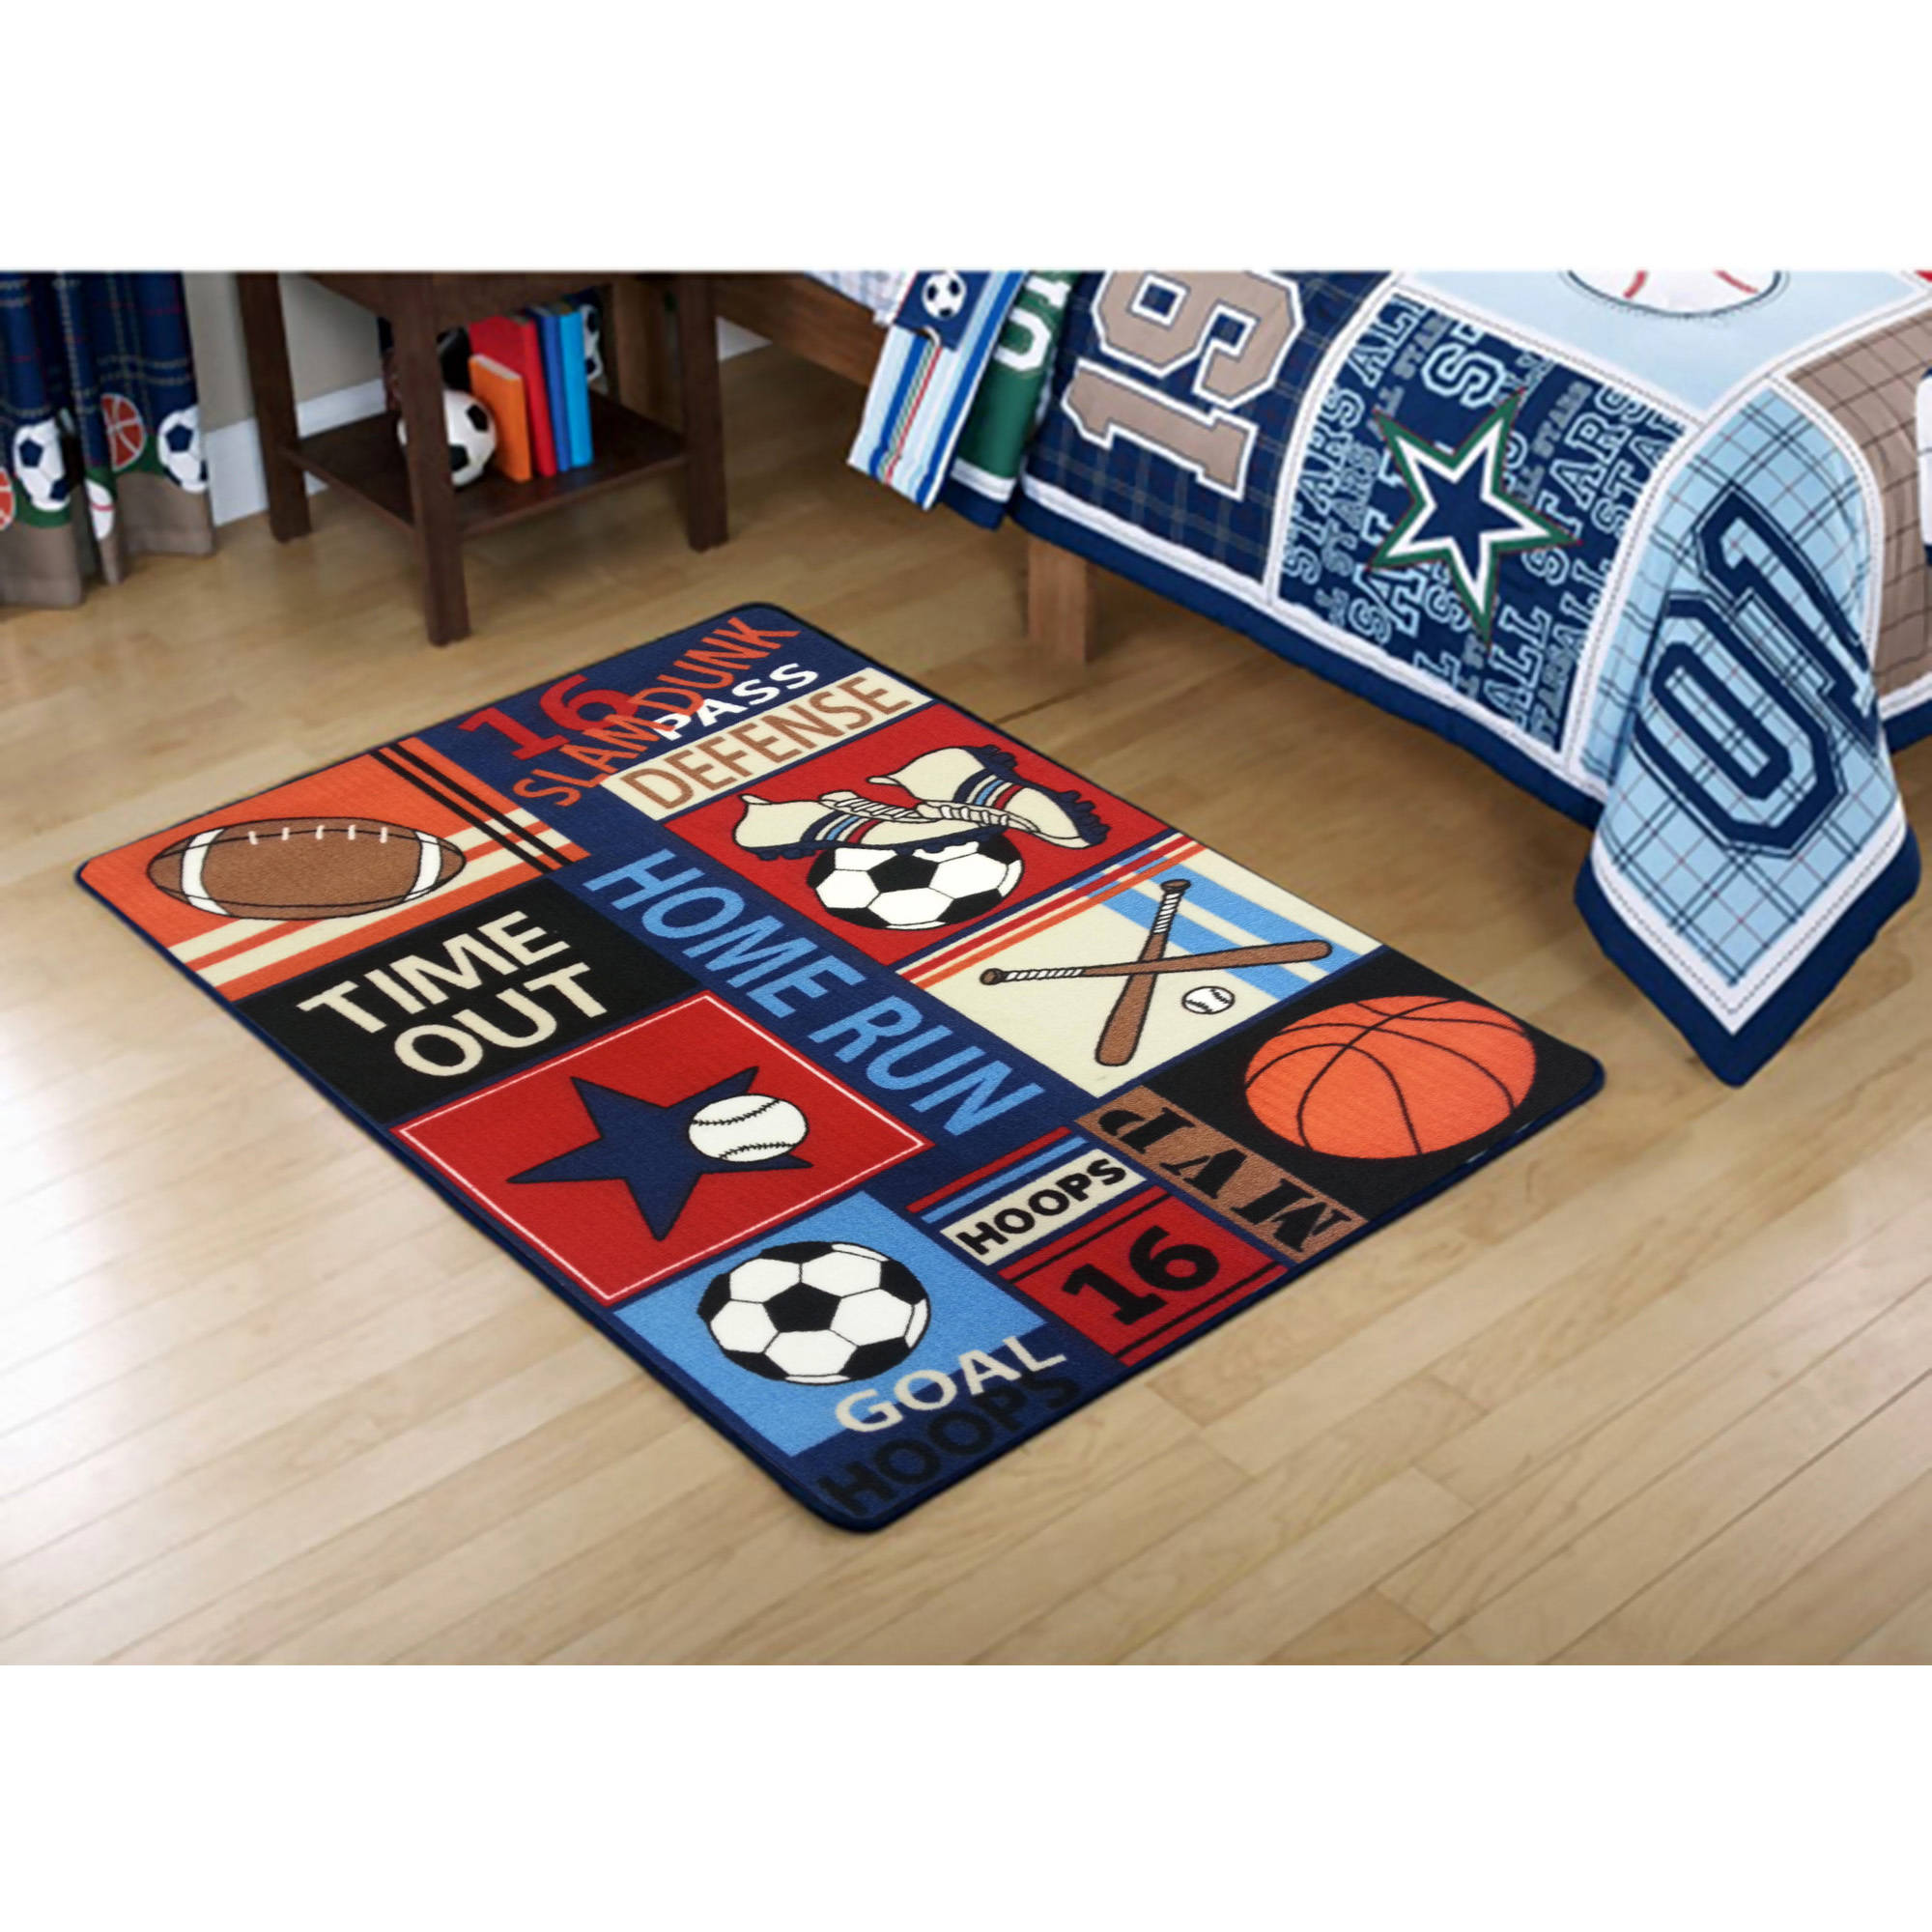 Children's Floor Rugs Mainstays Kids All Star Rectangular Royal Plush Rug